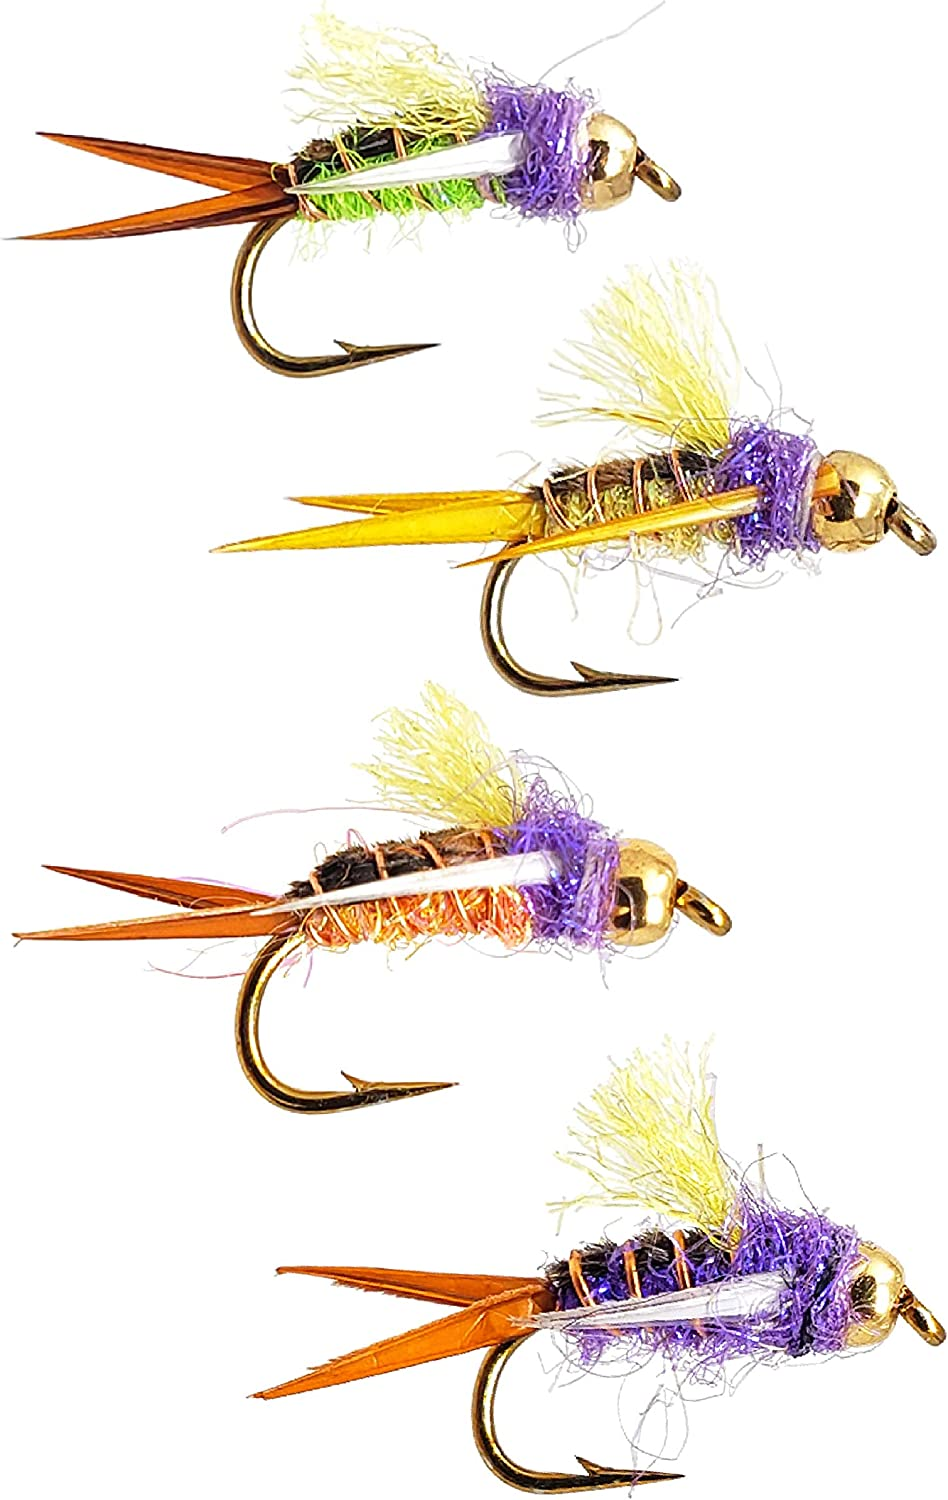 The Fly Crate Psycho Prince Nymph Fly Variety Assortment | Fly Fishing for Trout